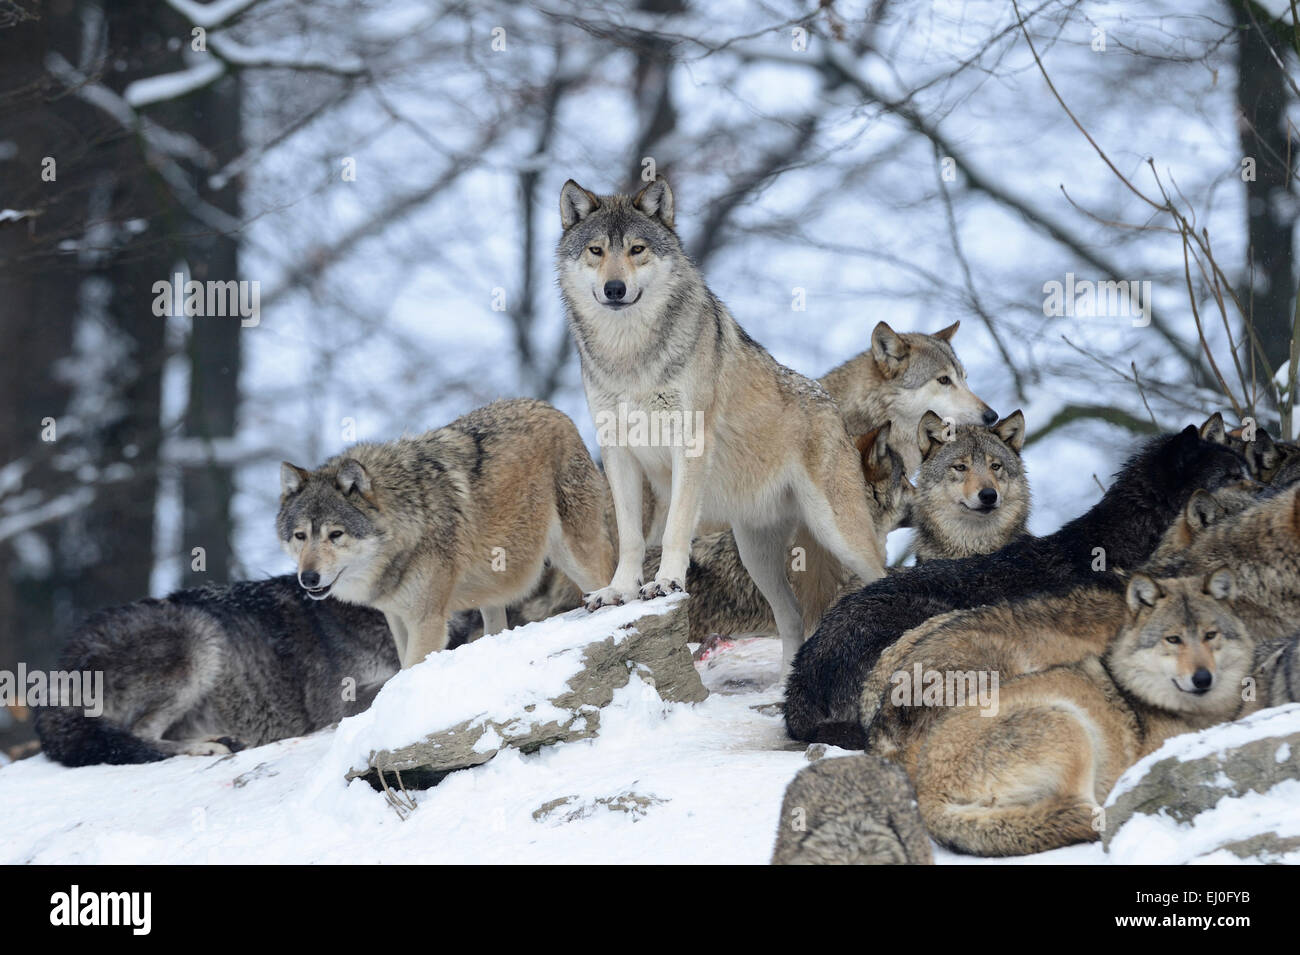 Wolf, animal, predator, wolves, predators, gray wolf, canids, Canis lupus lycaon, Germany, Europe, Stock Photo